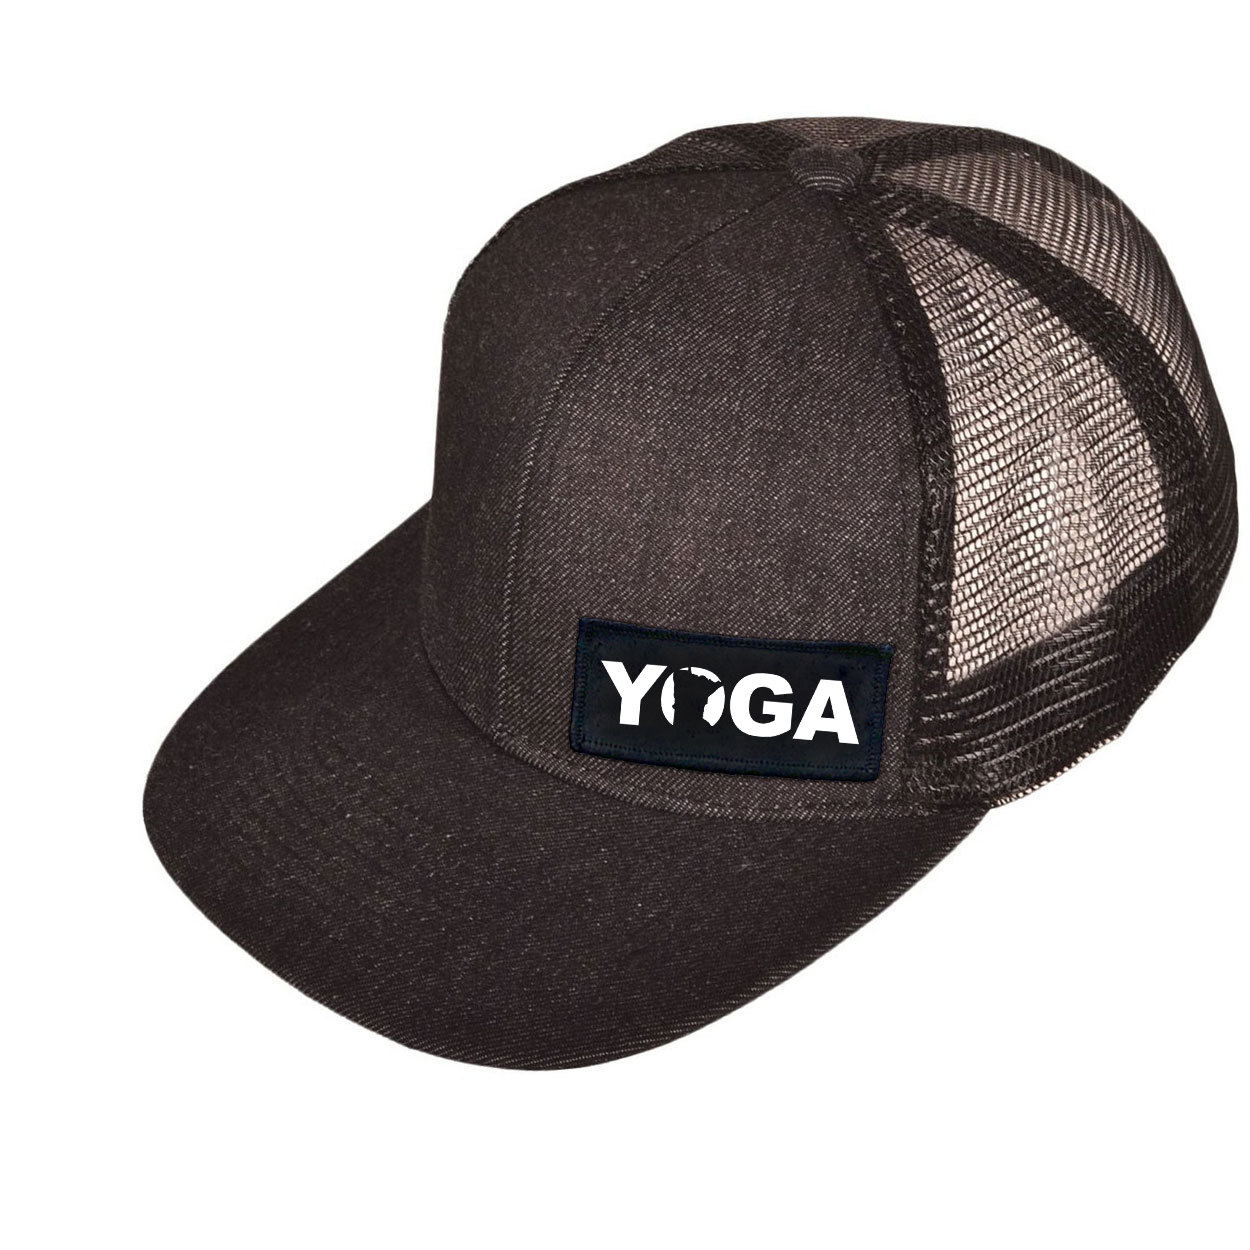 Yoga Minnesota Night Out Woven Patch Snapback Flat Brim Hat Black Denim (White Logo)